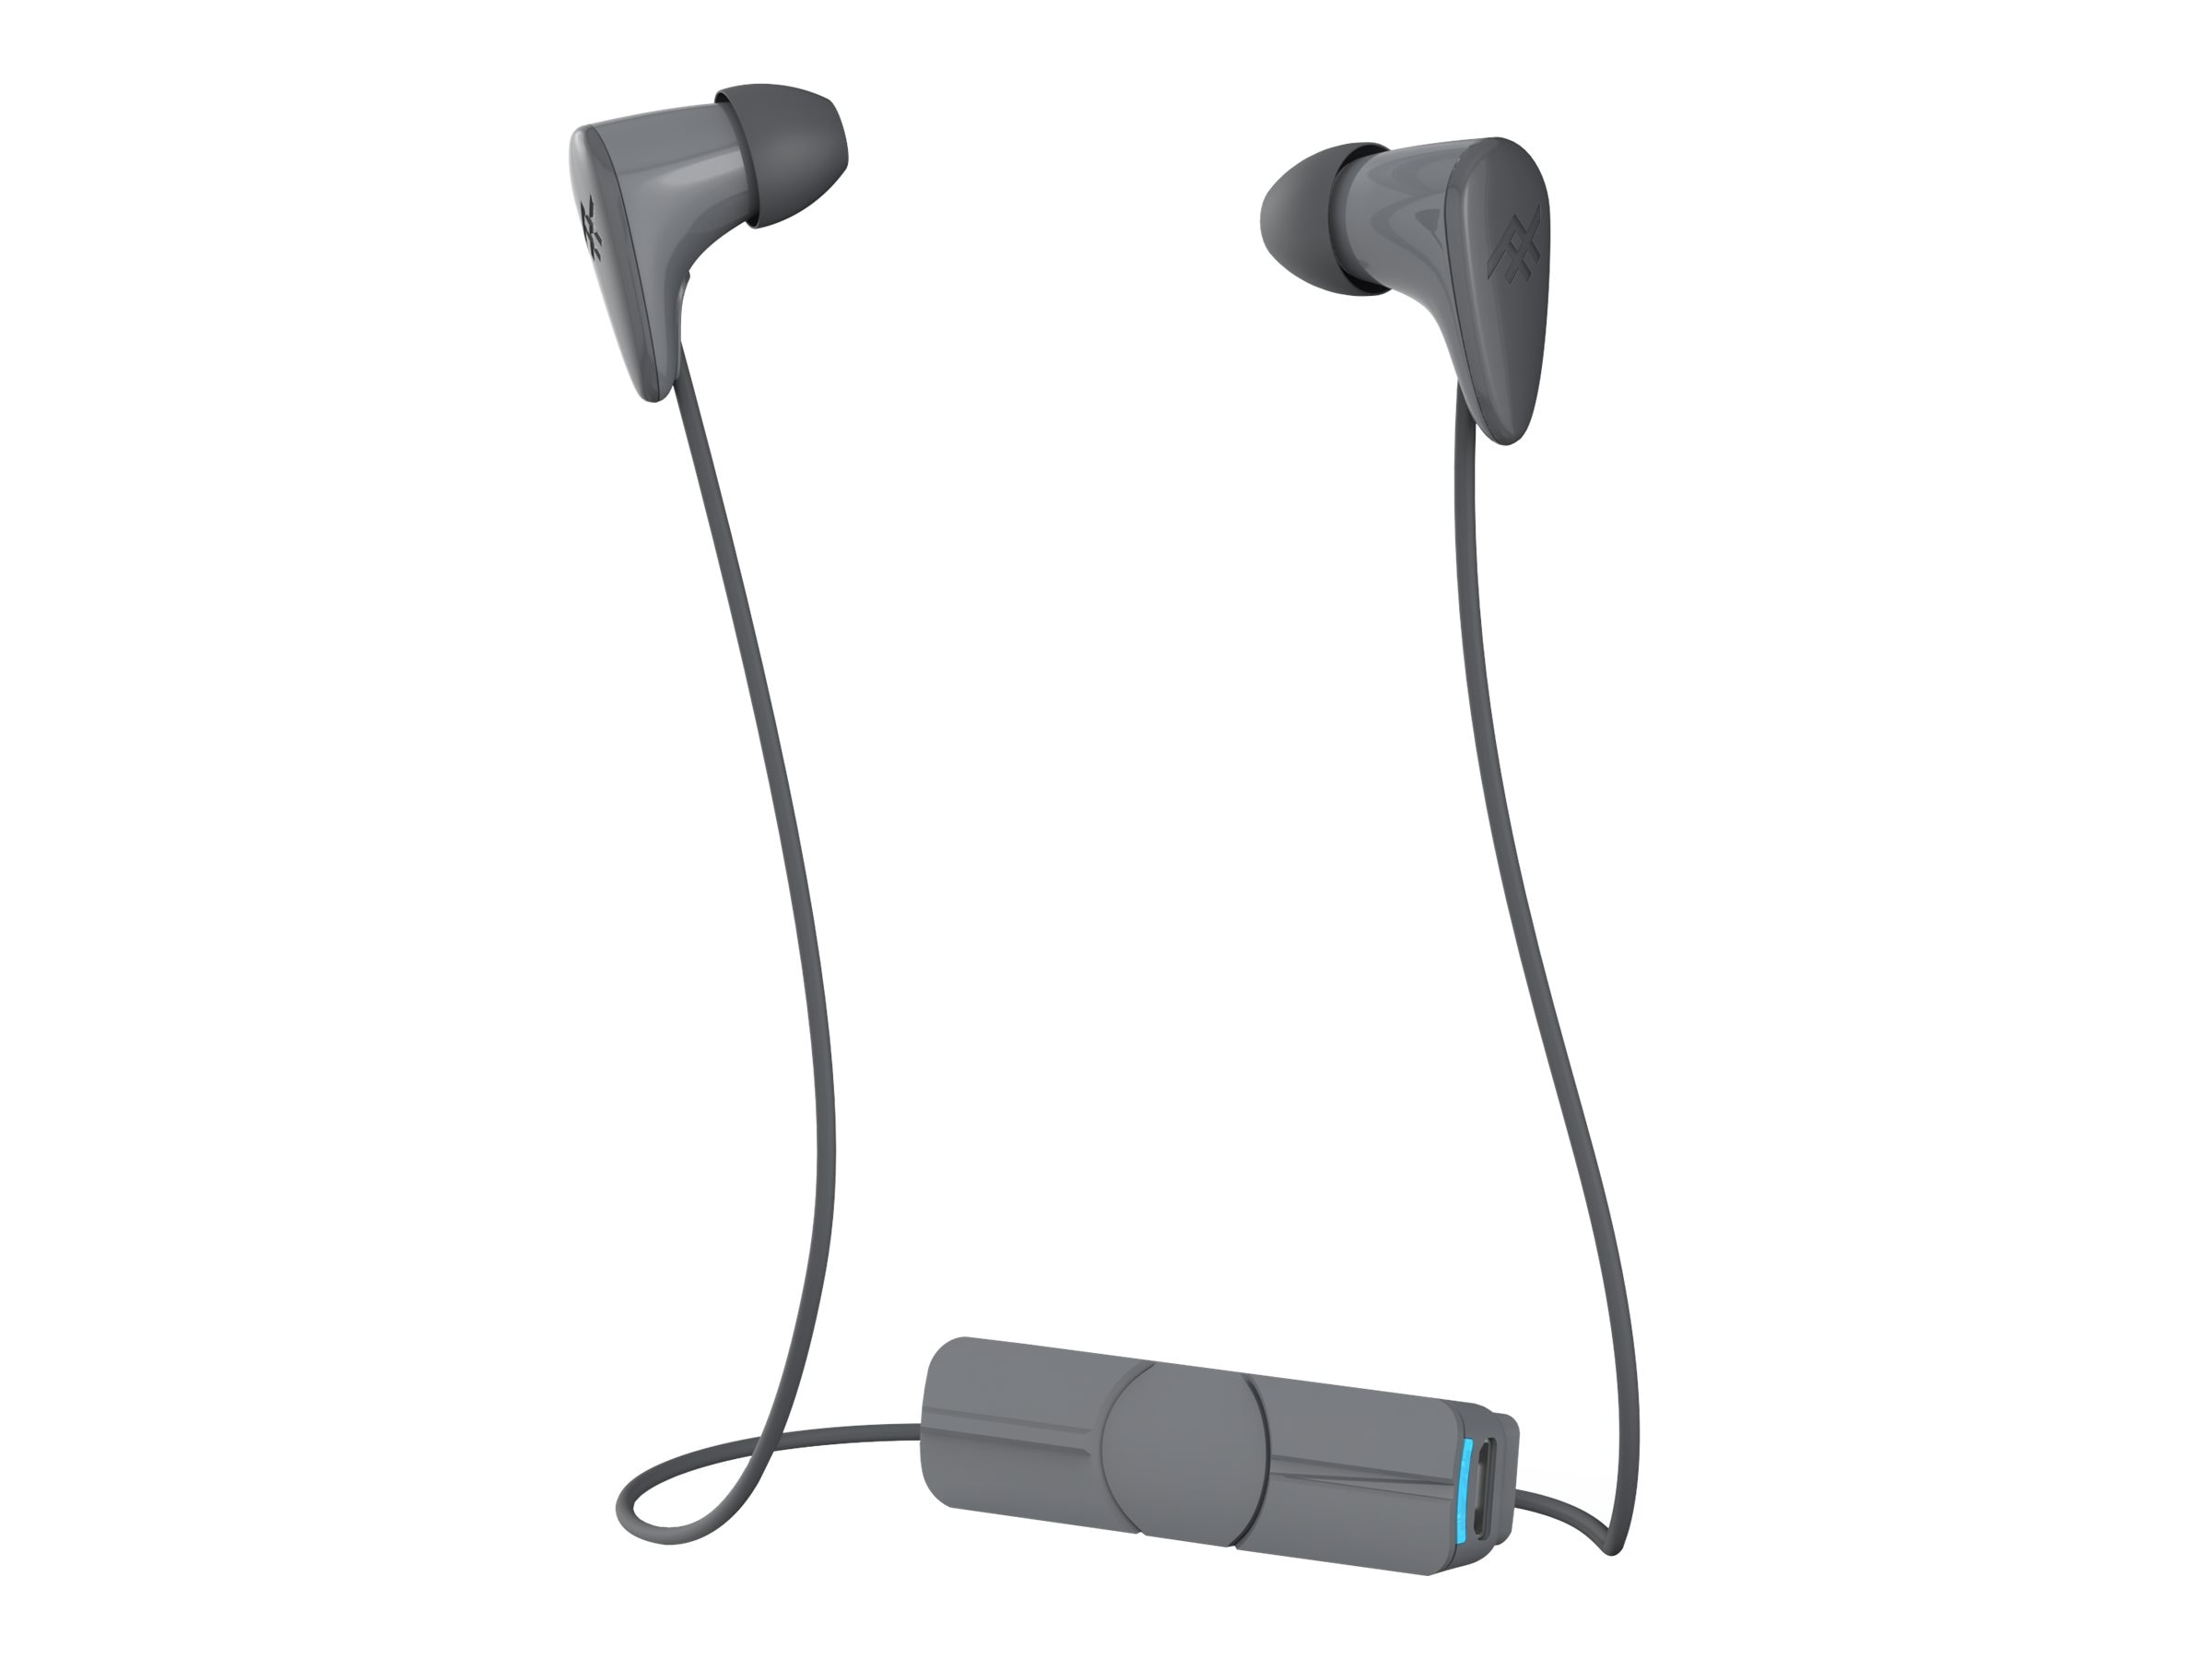 Ifrogz Charisma Wireless Earbuds - Gray